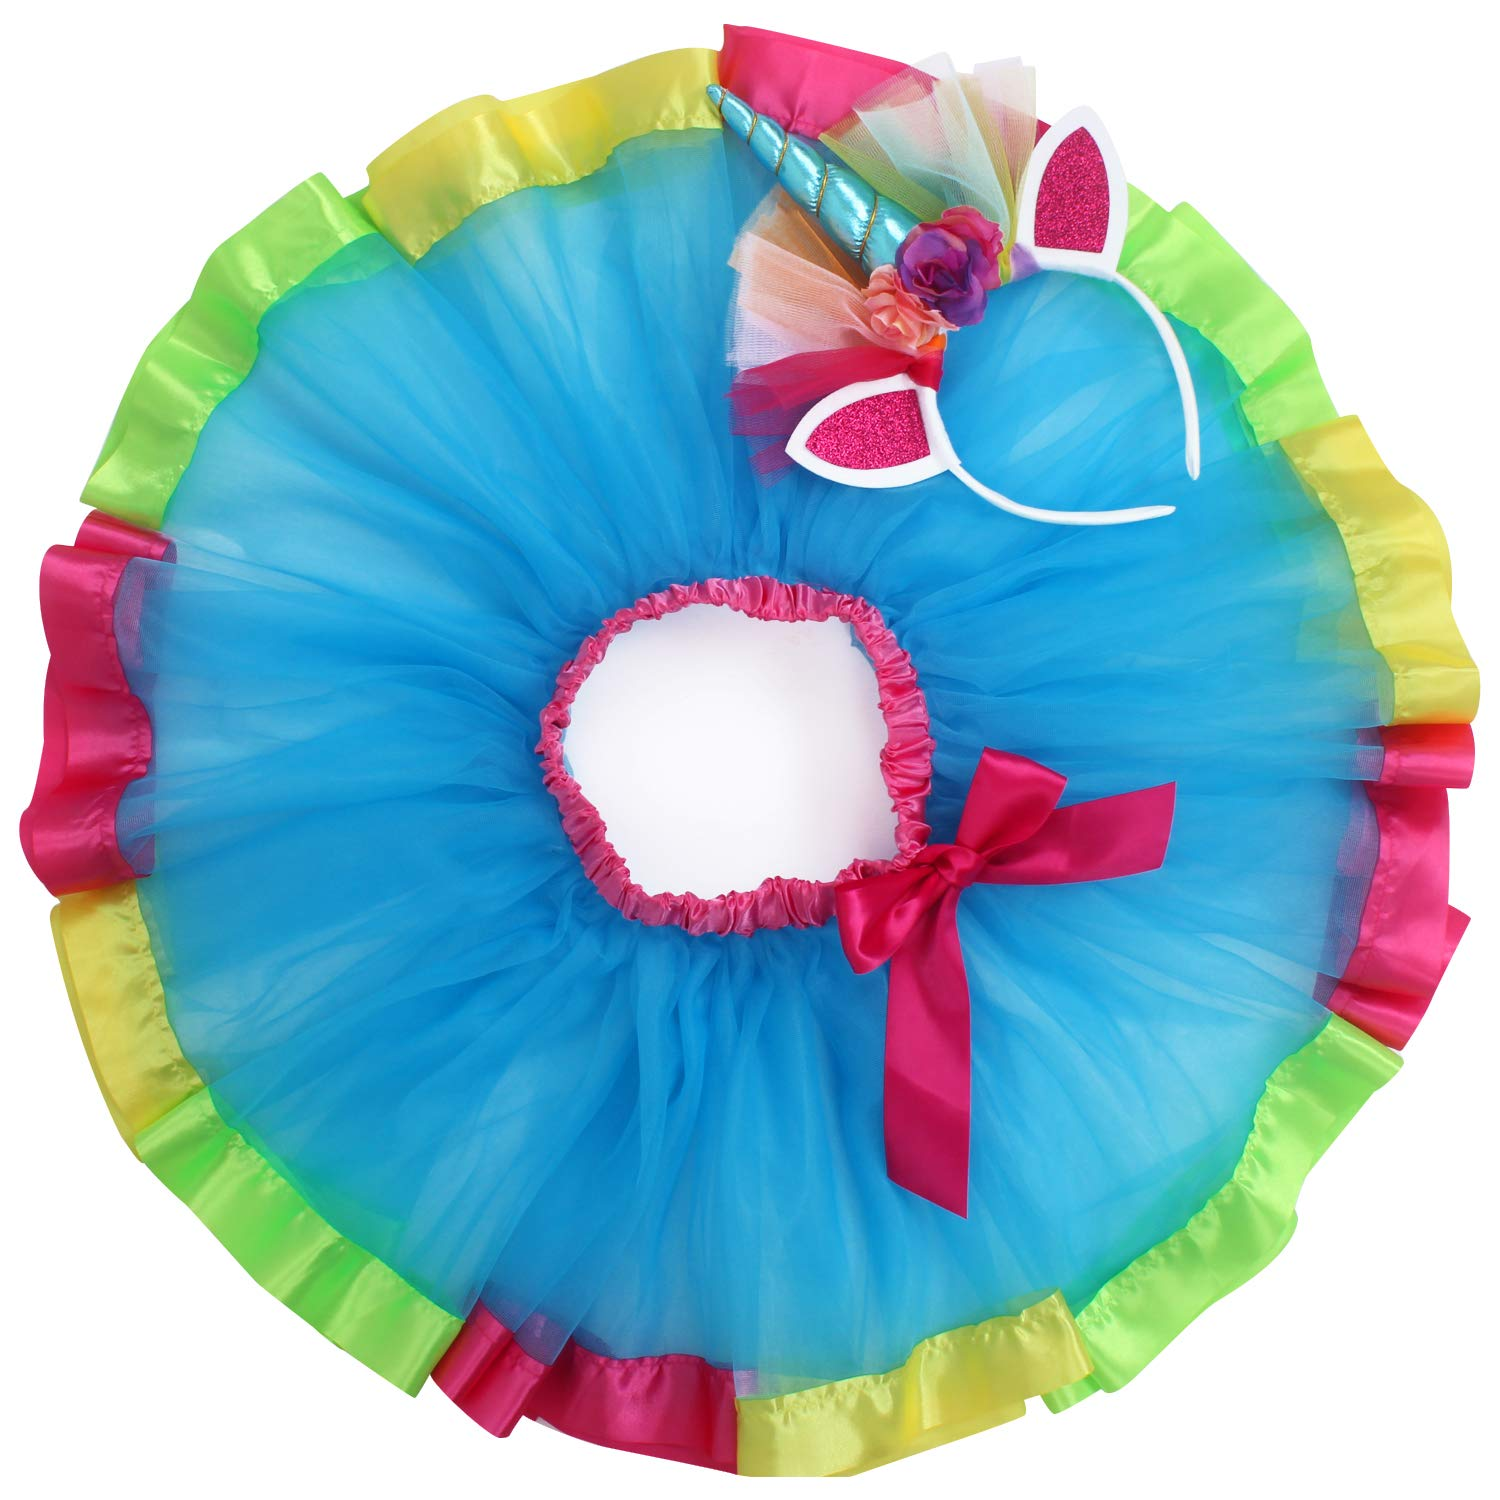 Rainbow Tutu Dress Birthday Outfit for Little Girls with Headband and Bracelets